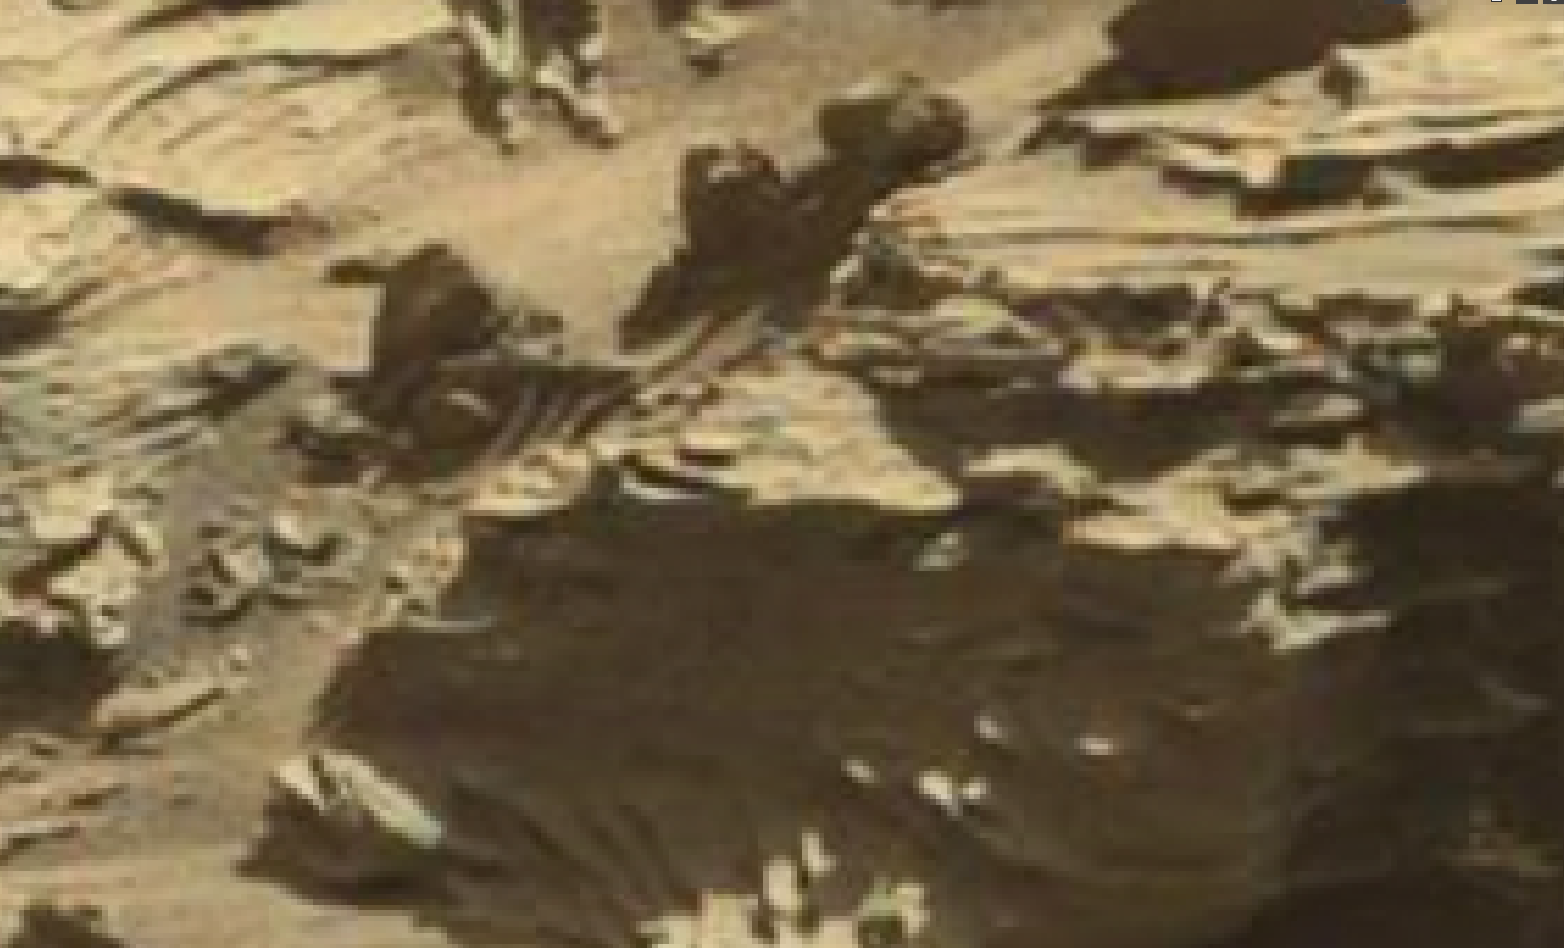 mars sol 1298 anomaly-artifacts 9 was life on mars